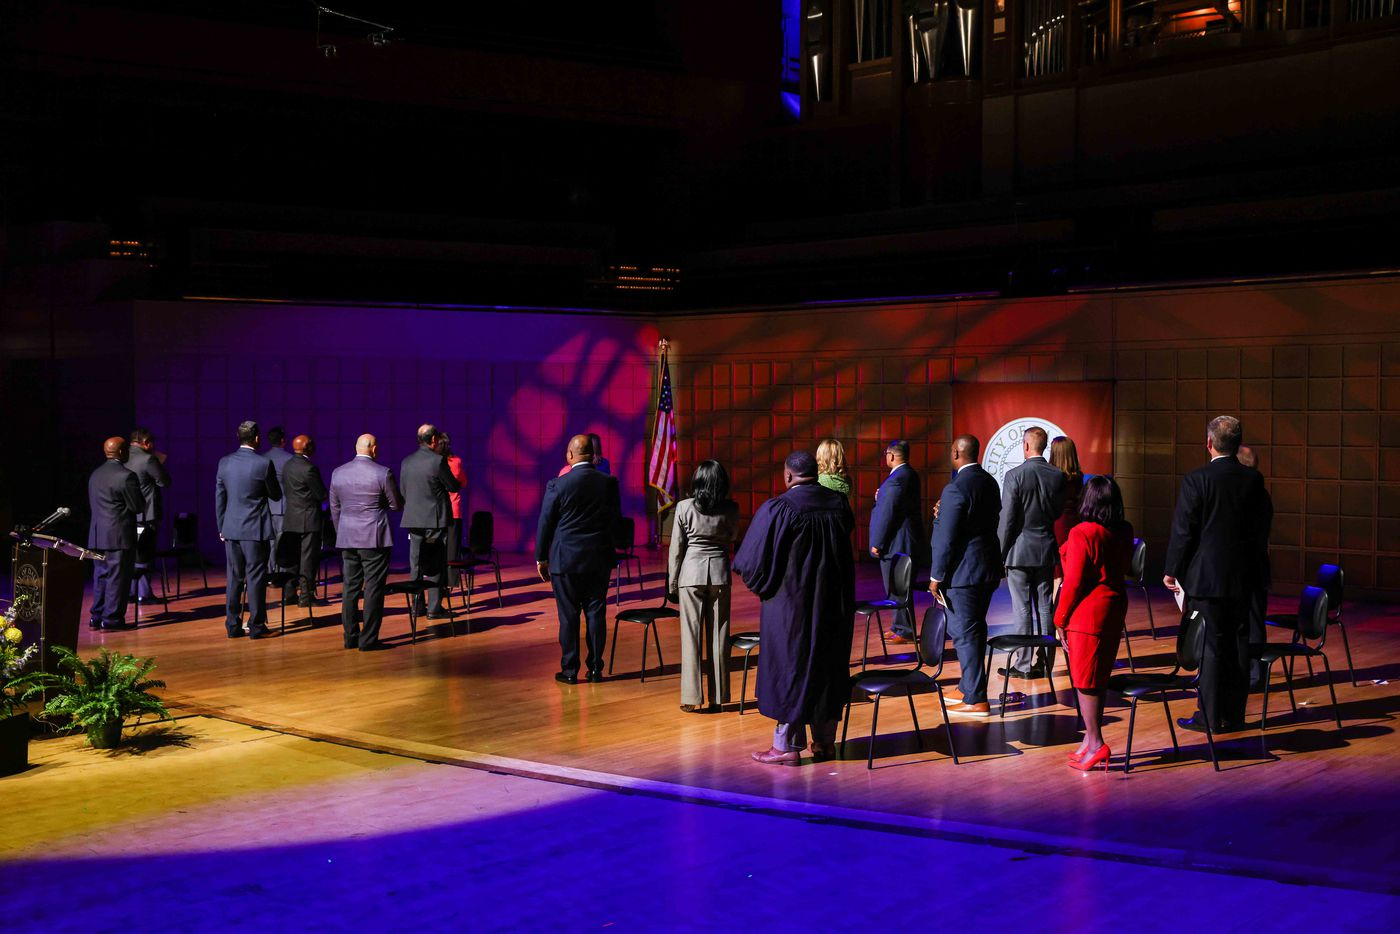 Dallas City Council face the U.S. flag as the national anthem plays during the Inauguration Ceremony at the Meyerson Symphony Center in Dallas on Monday, June 14, 2021. (Lola Gomez/The Dallas Morning News)